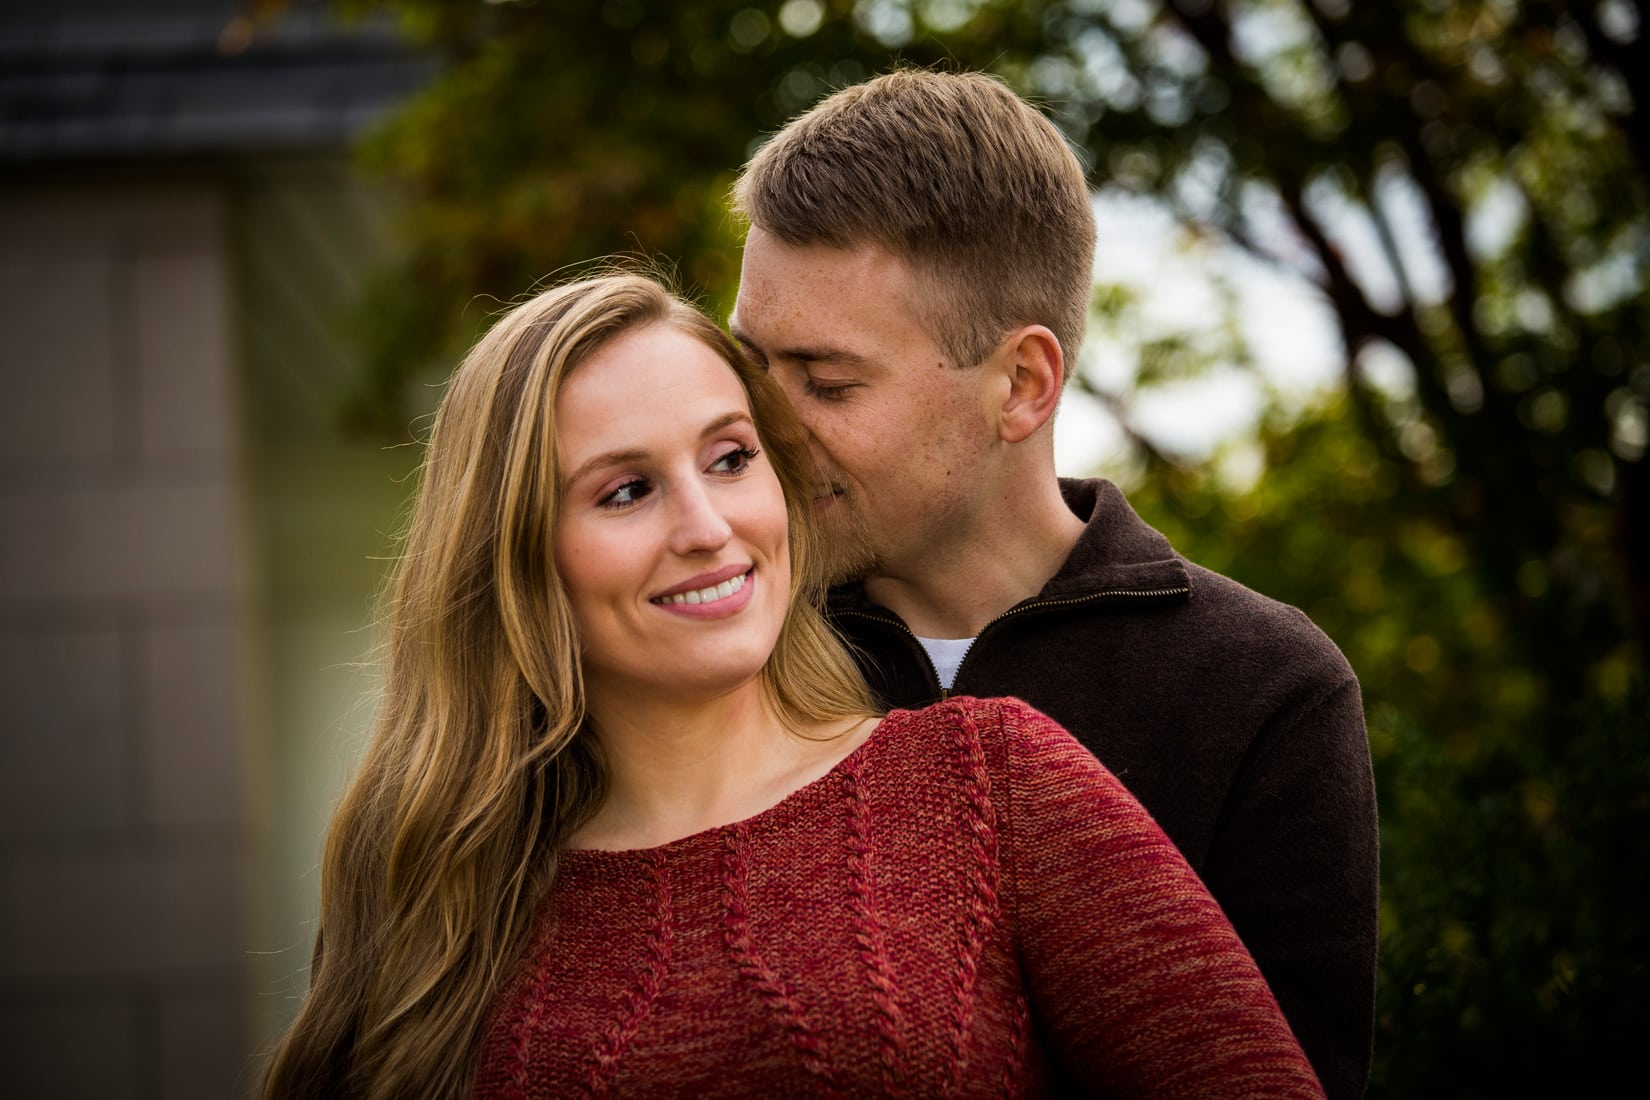 Penn State Engagement Photo, State College, PA - Bob Lambert Photography